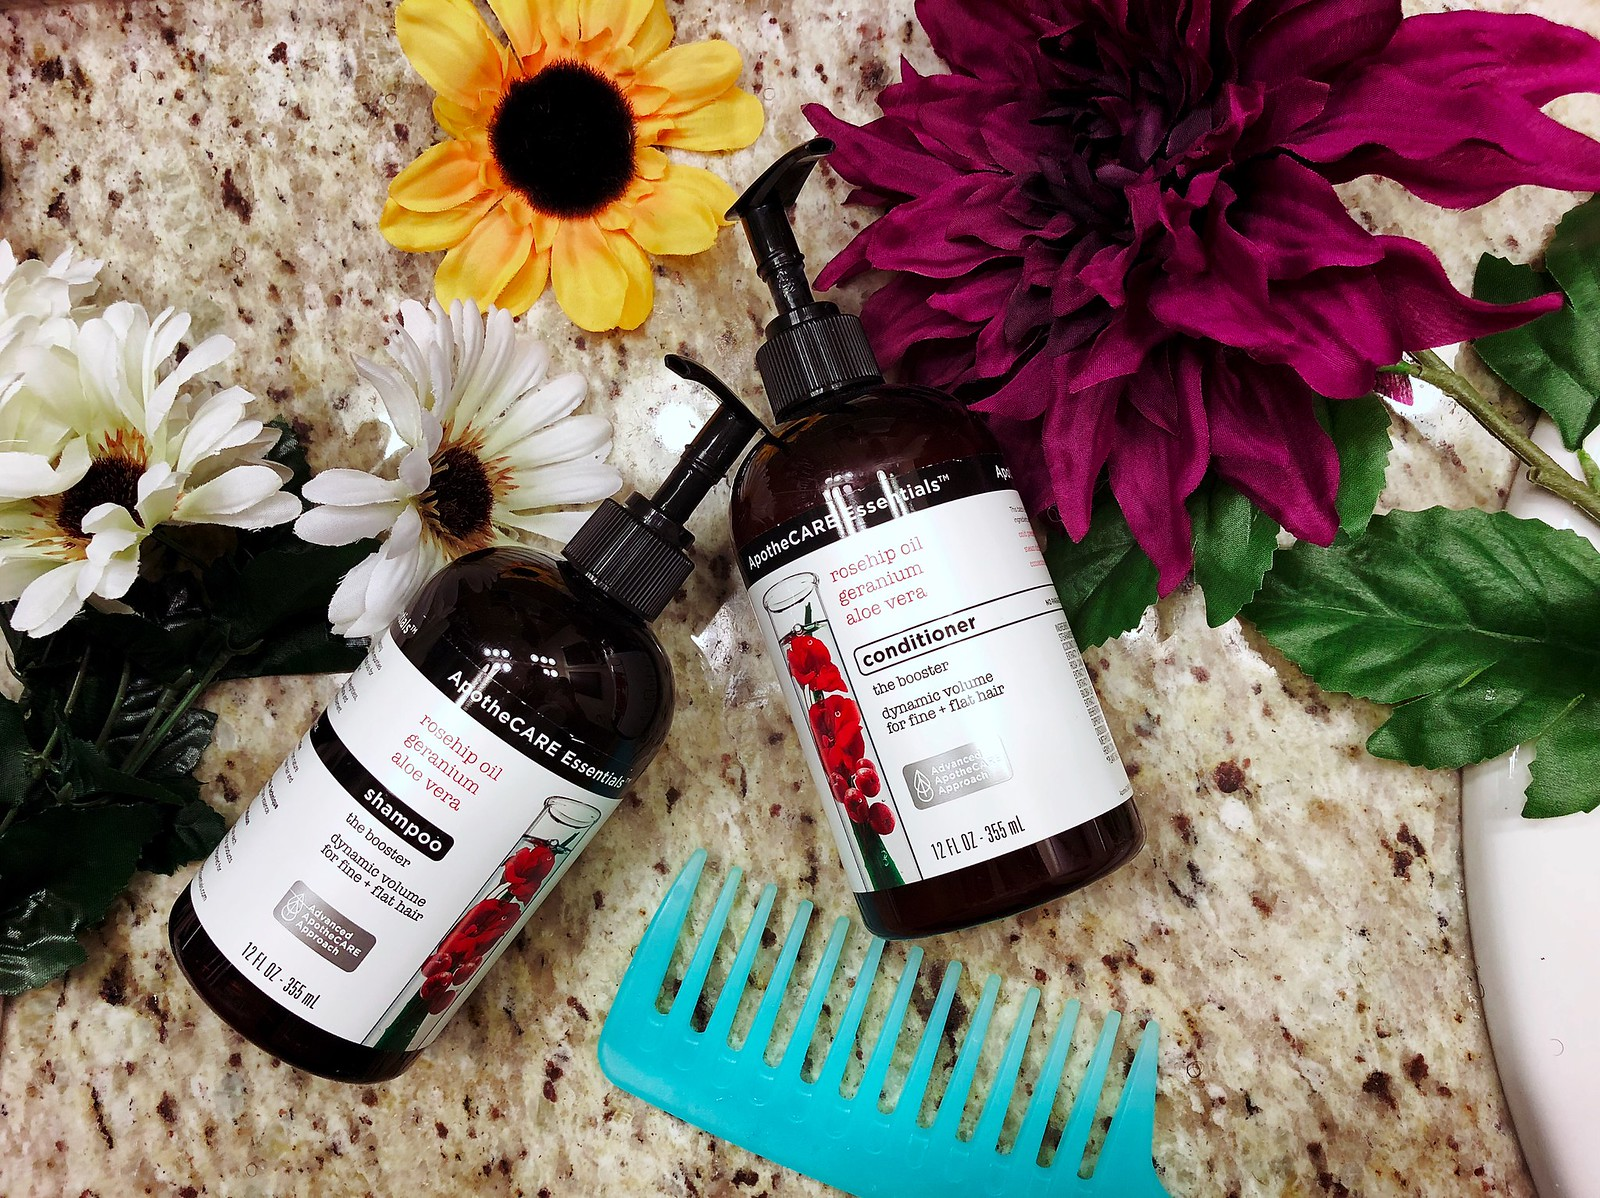 apothecare essentials hair care line at cvs